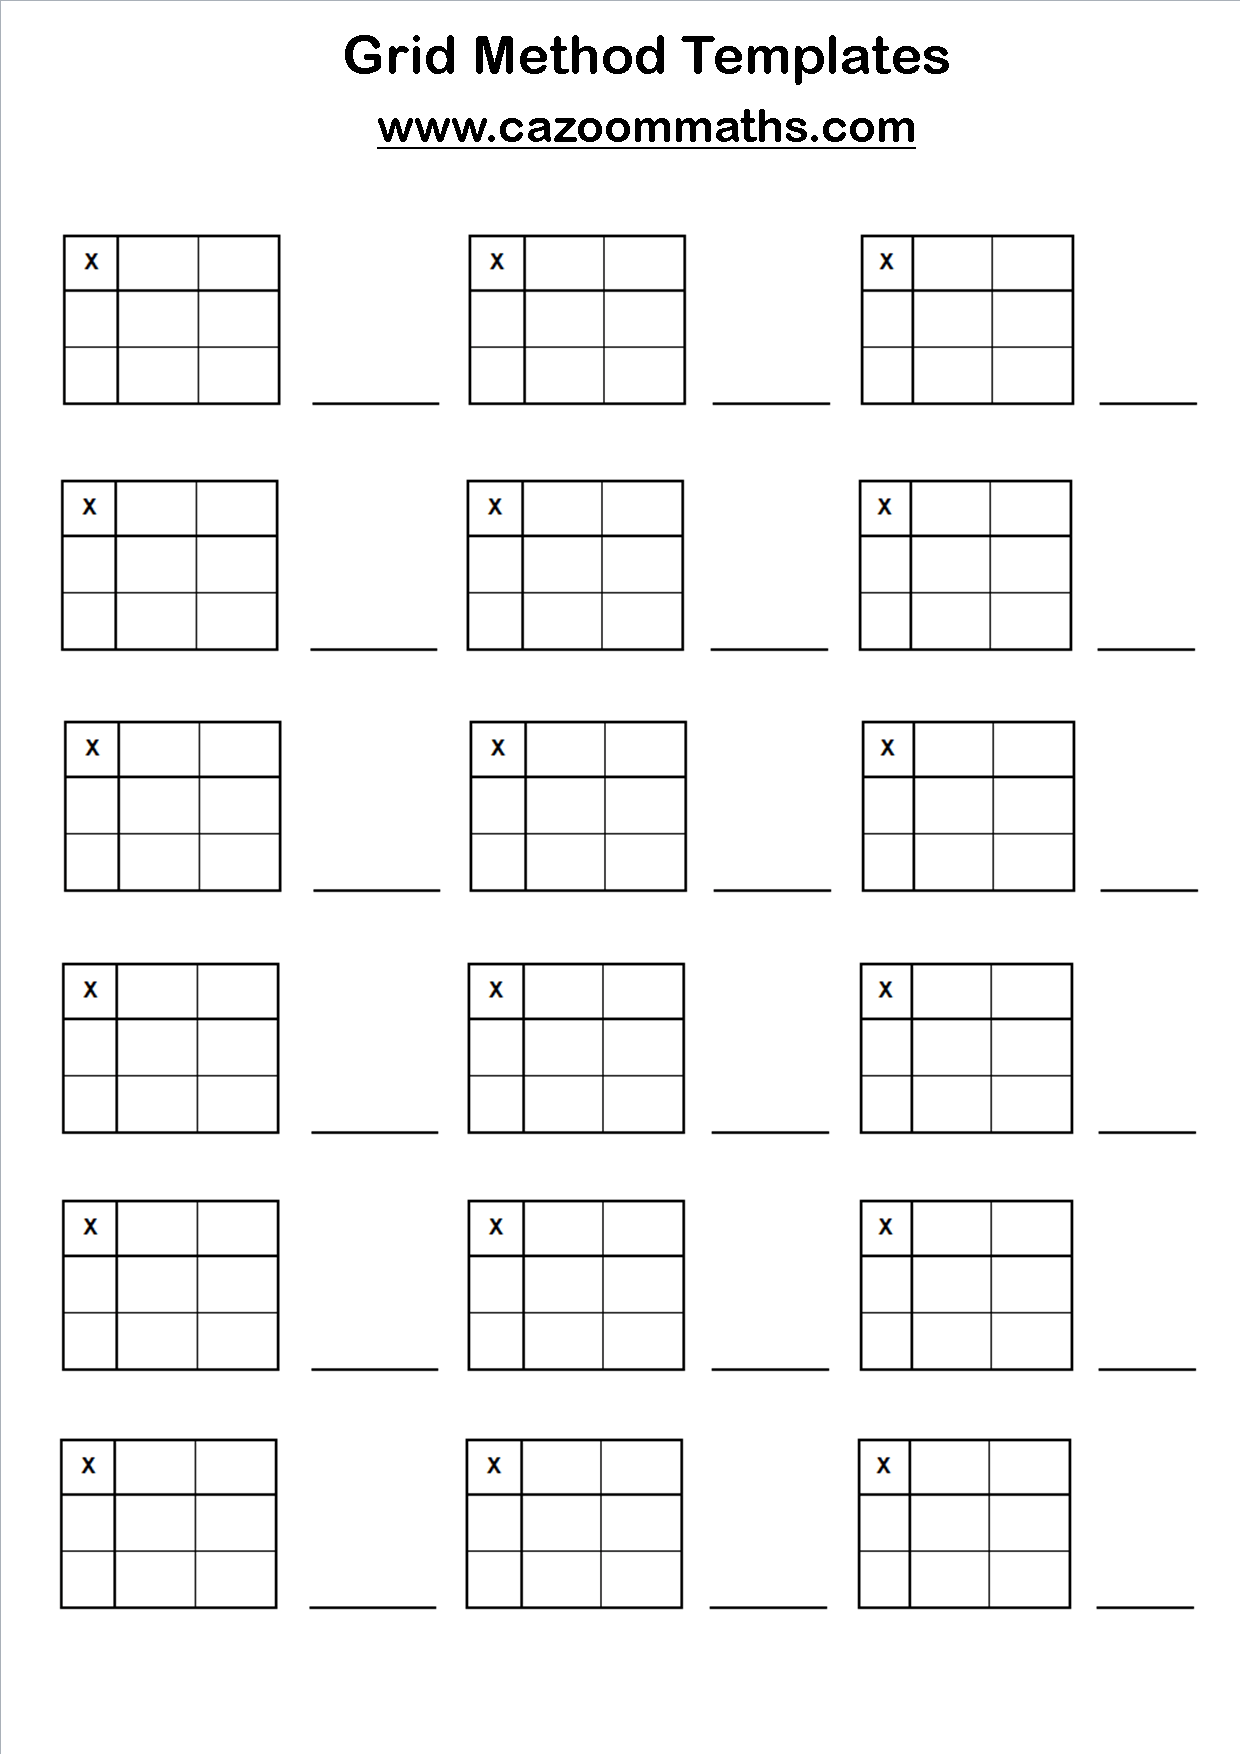 Worksheets Box Method Multiplication Worksheet grid method templates cazoom maths worksheets